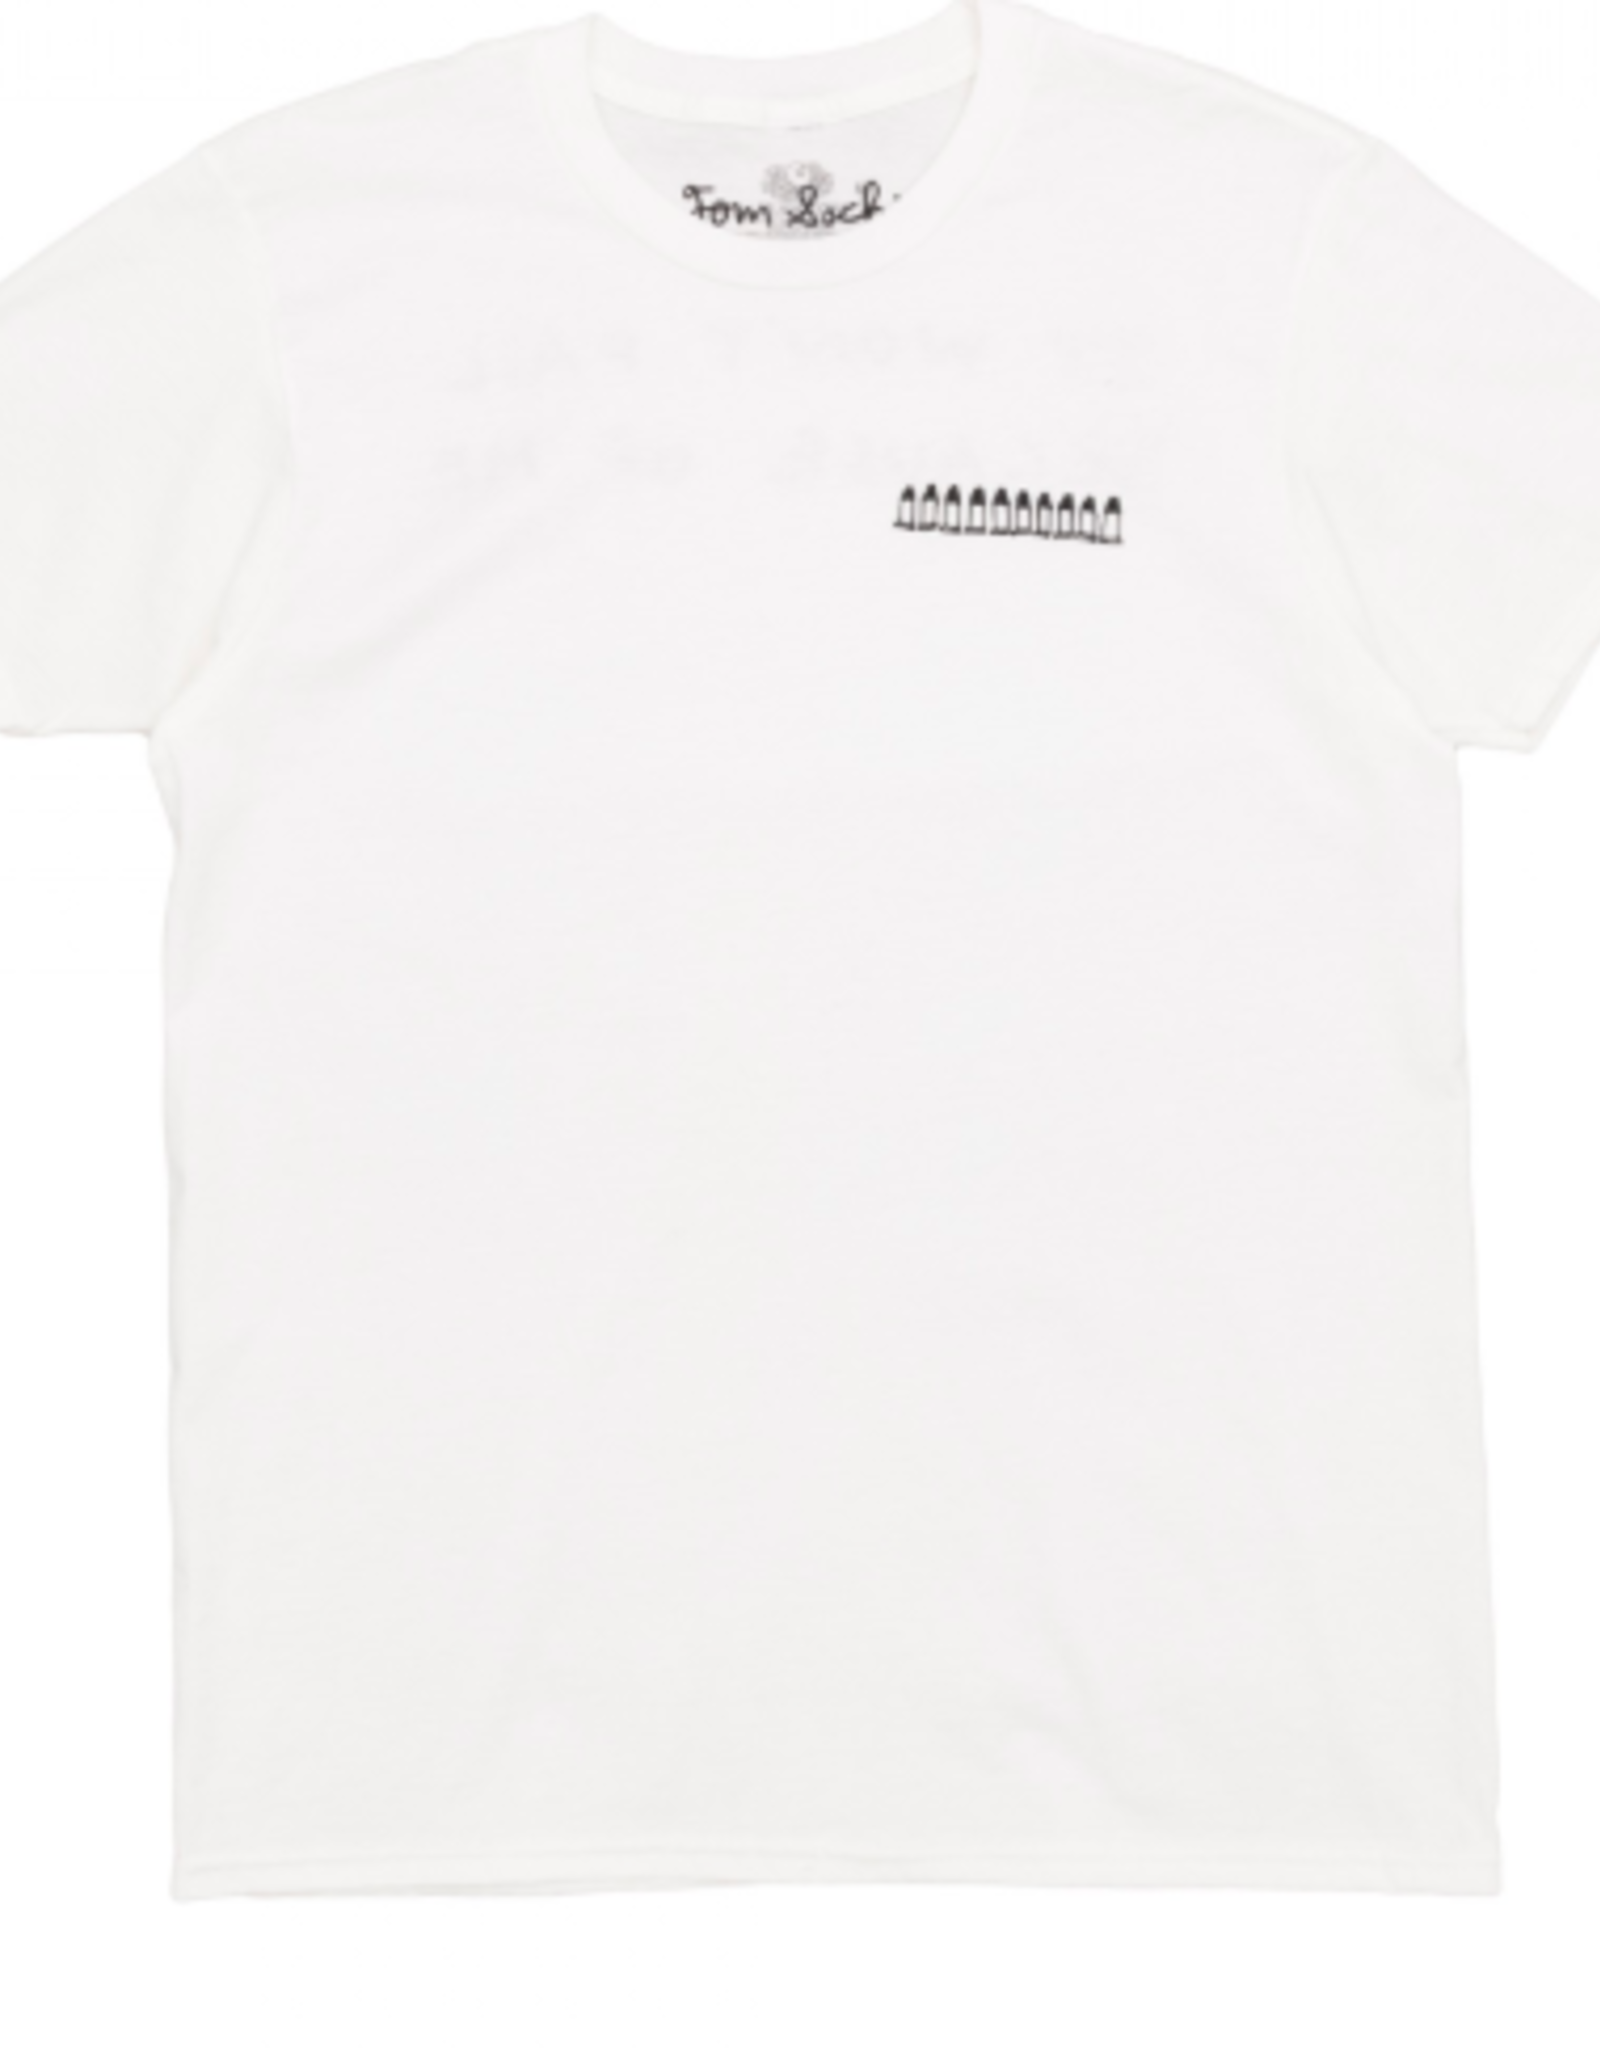 NIKE Dover Street Market E-SHOP Nike x Tom Sachs Short Sleeve T-Shirt (White)